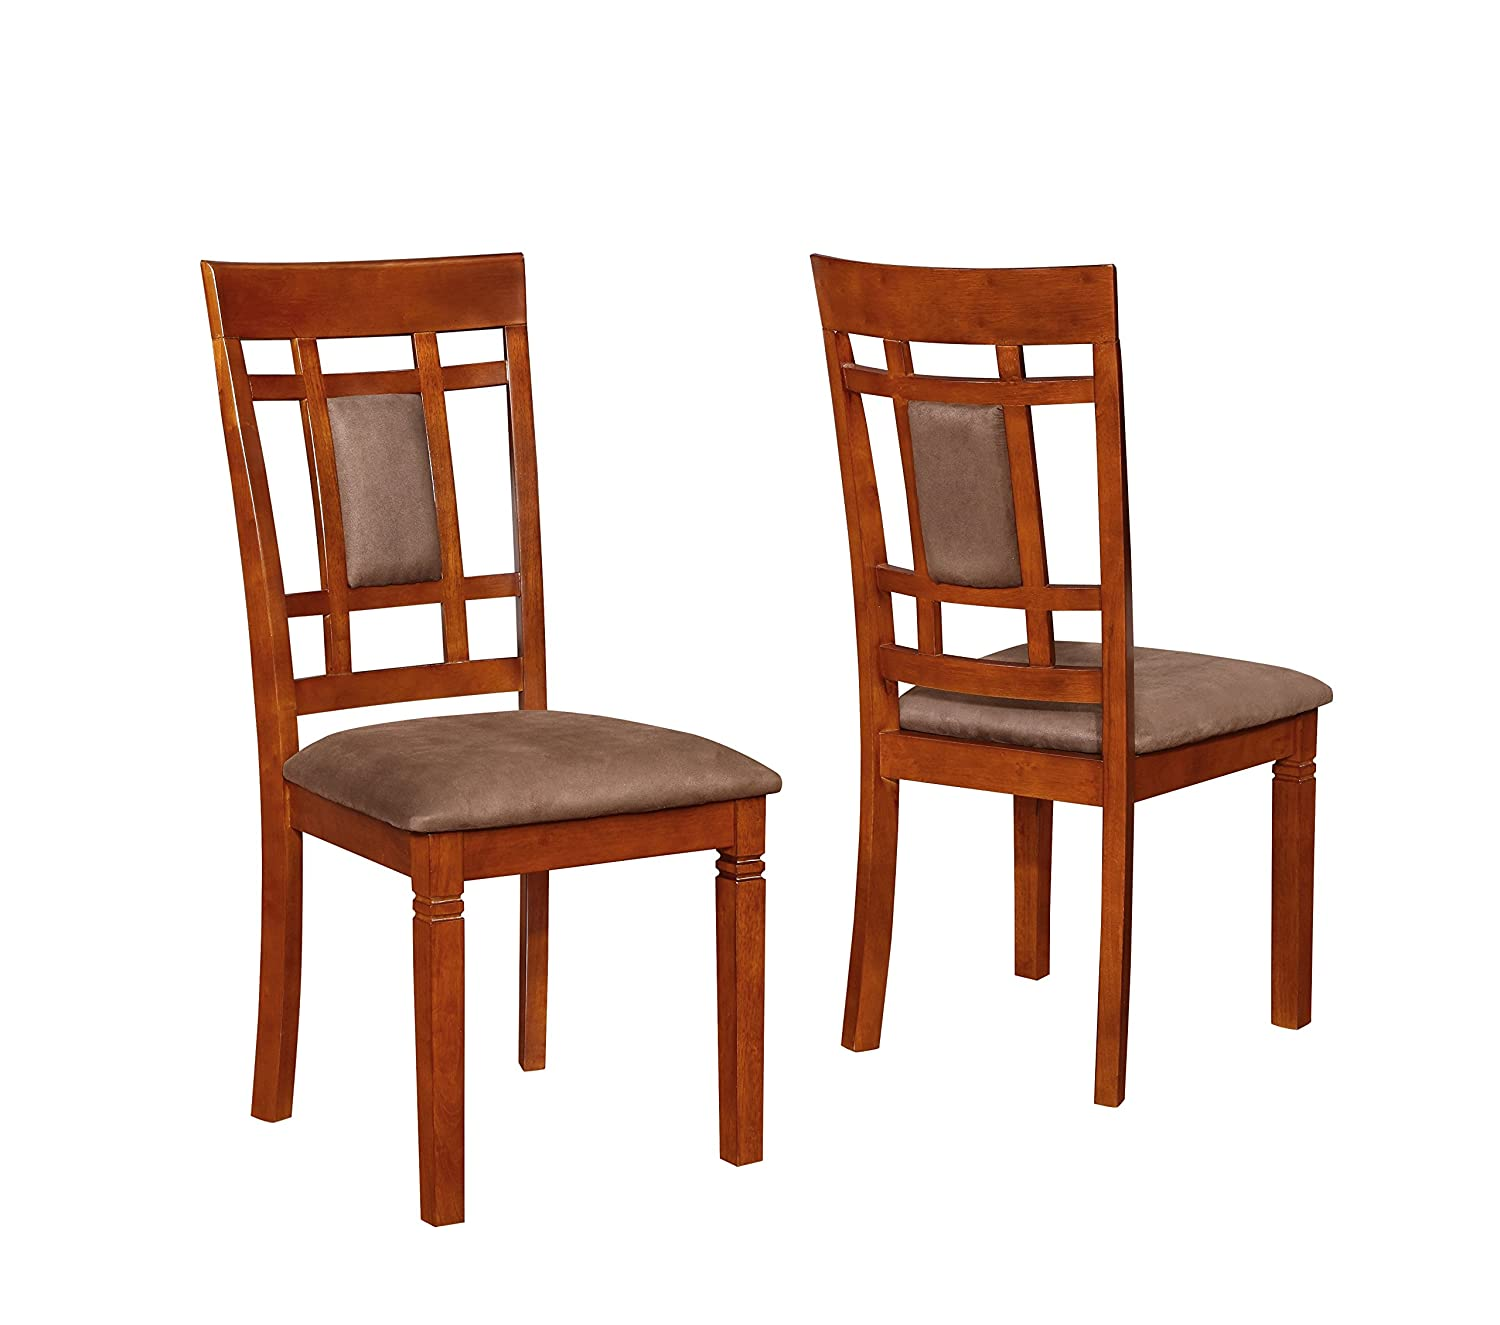 Stunning Dining Room Chairs Wooden Rugoingmyway